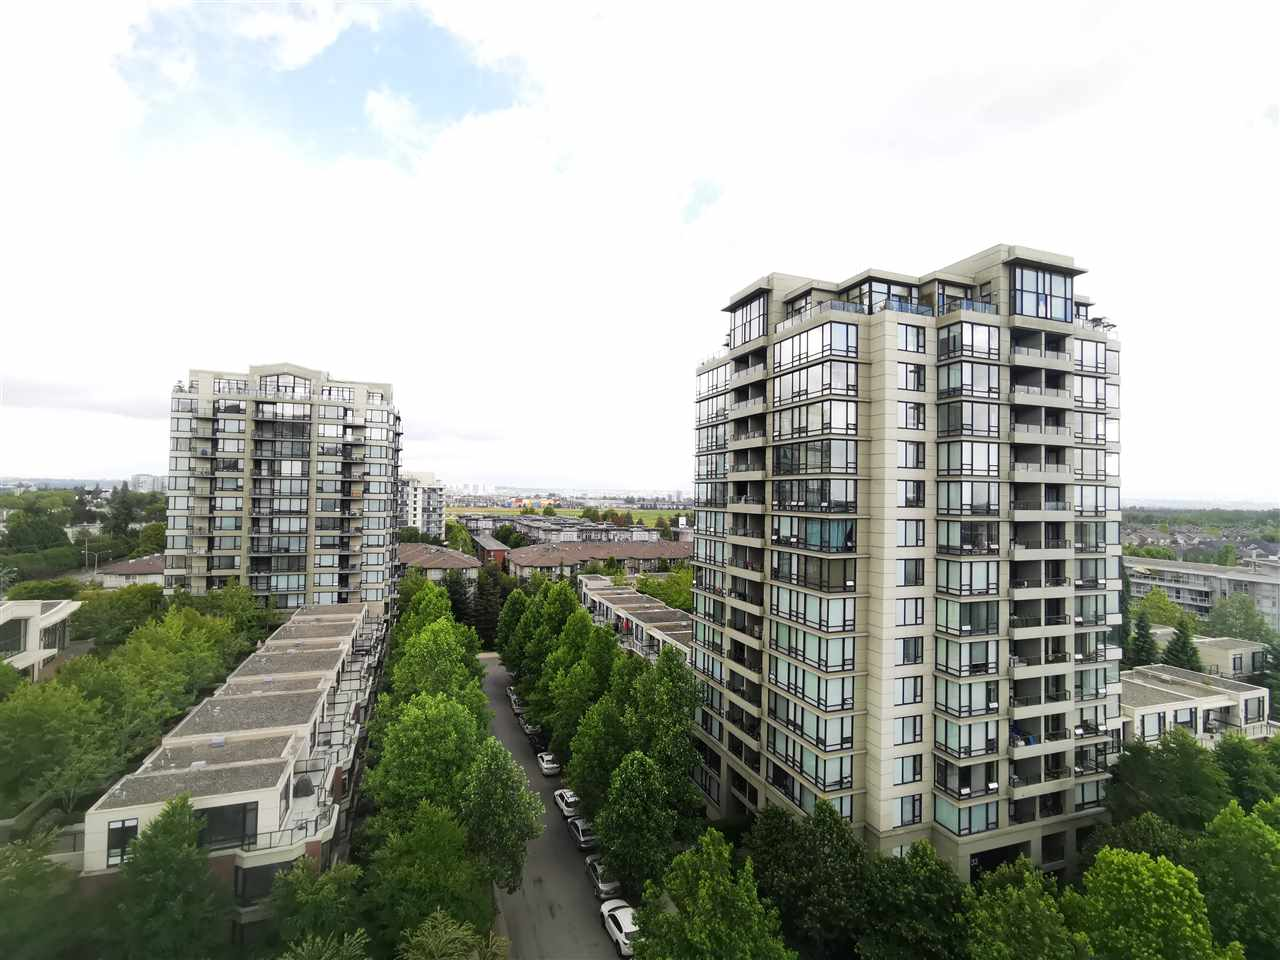 Monet by Concord Pacific. Prestigious and luxurious corner unit. NE facing remarkable views, quiet and convenient featuring 885 sqft of living space. 2 bed, 2 bath and den. Unit includes high quality finishing w/ euro appliances. most sought after location in the center of Richmond. Close to Richmond Center, school, daycare. Close to KPU. Beautiful mountain views and a very functional layout.